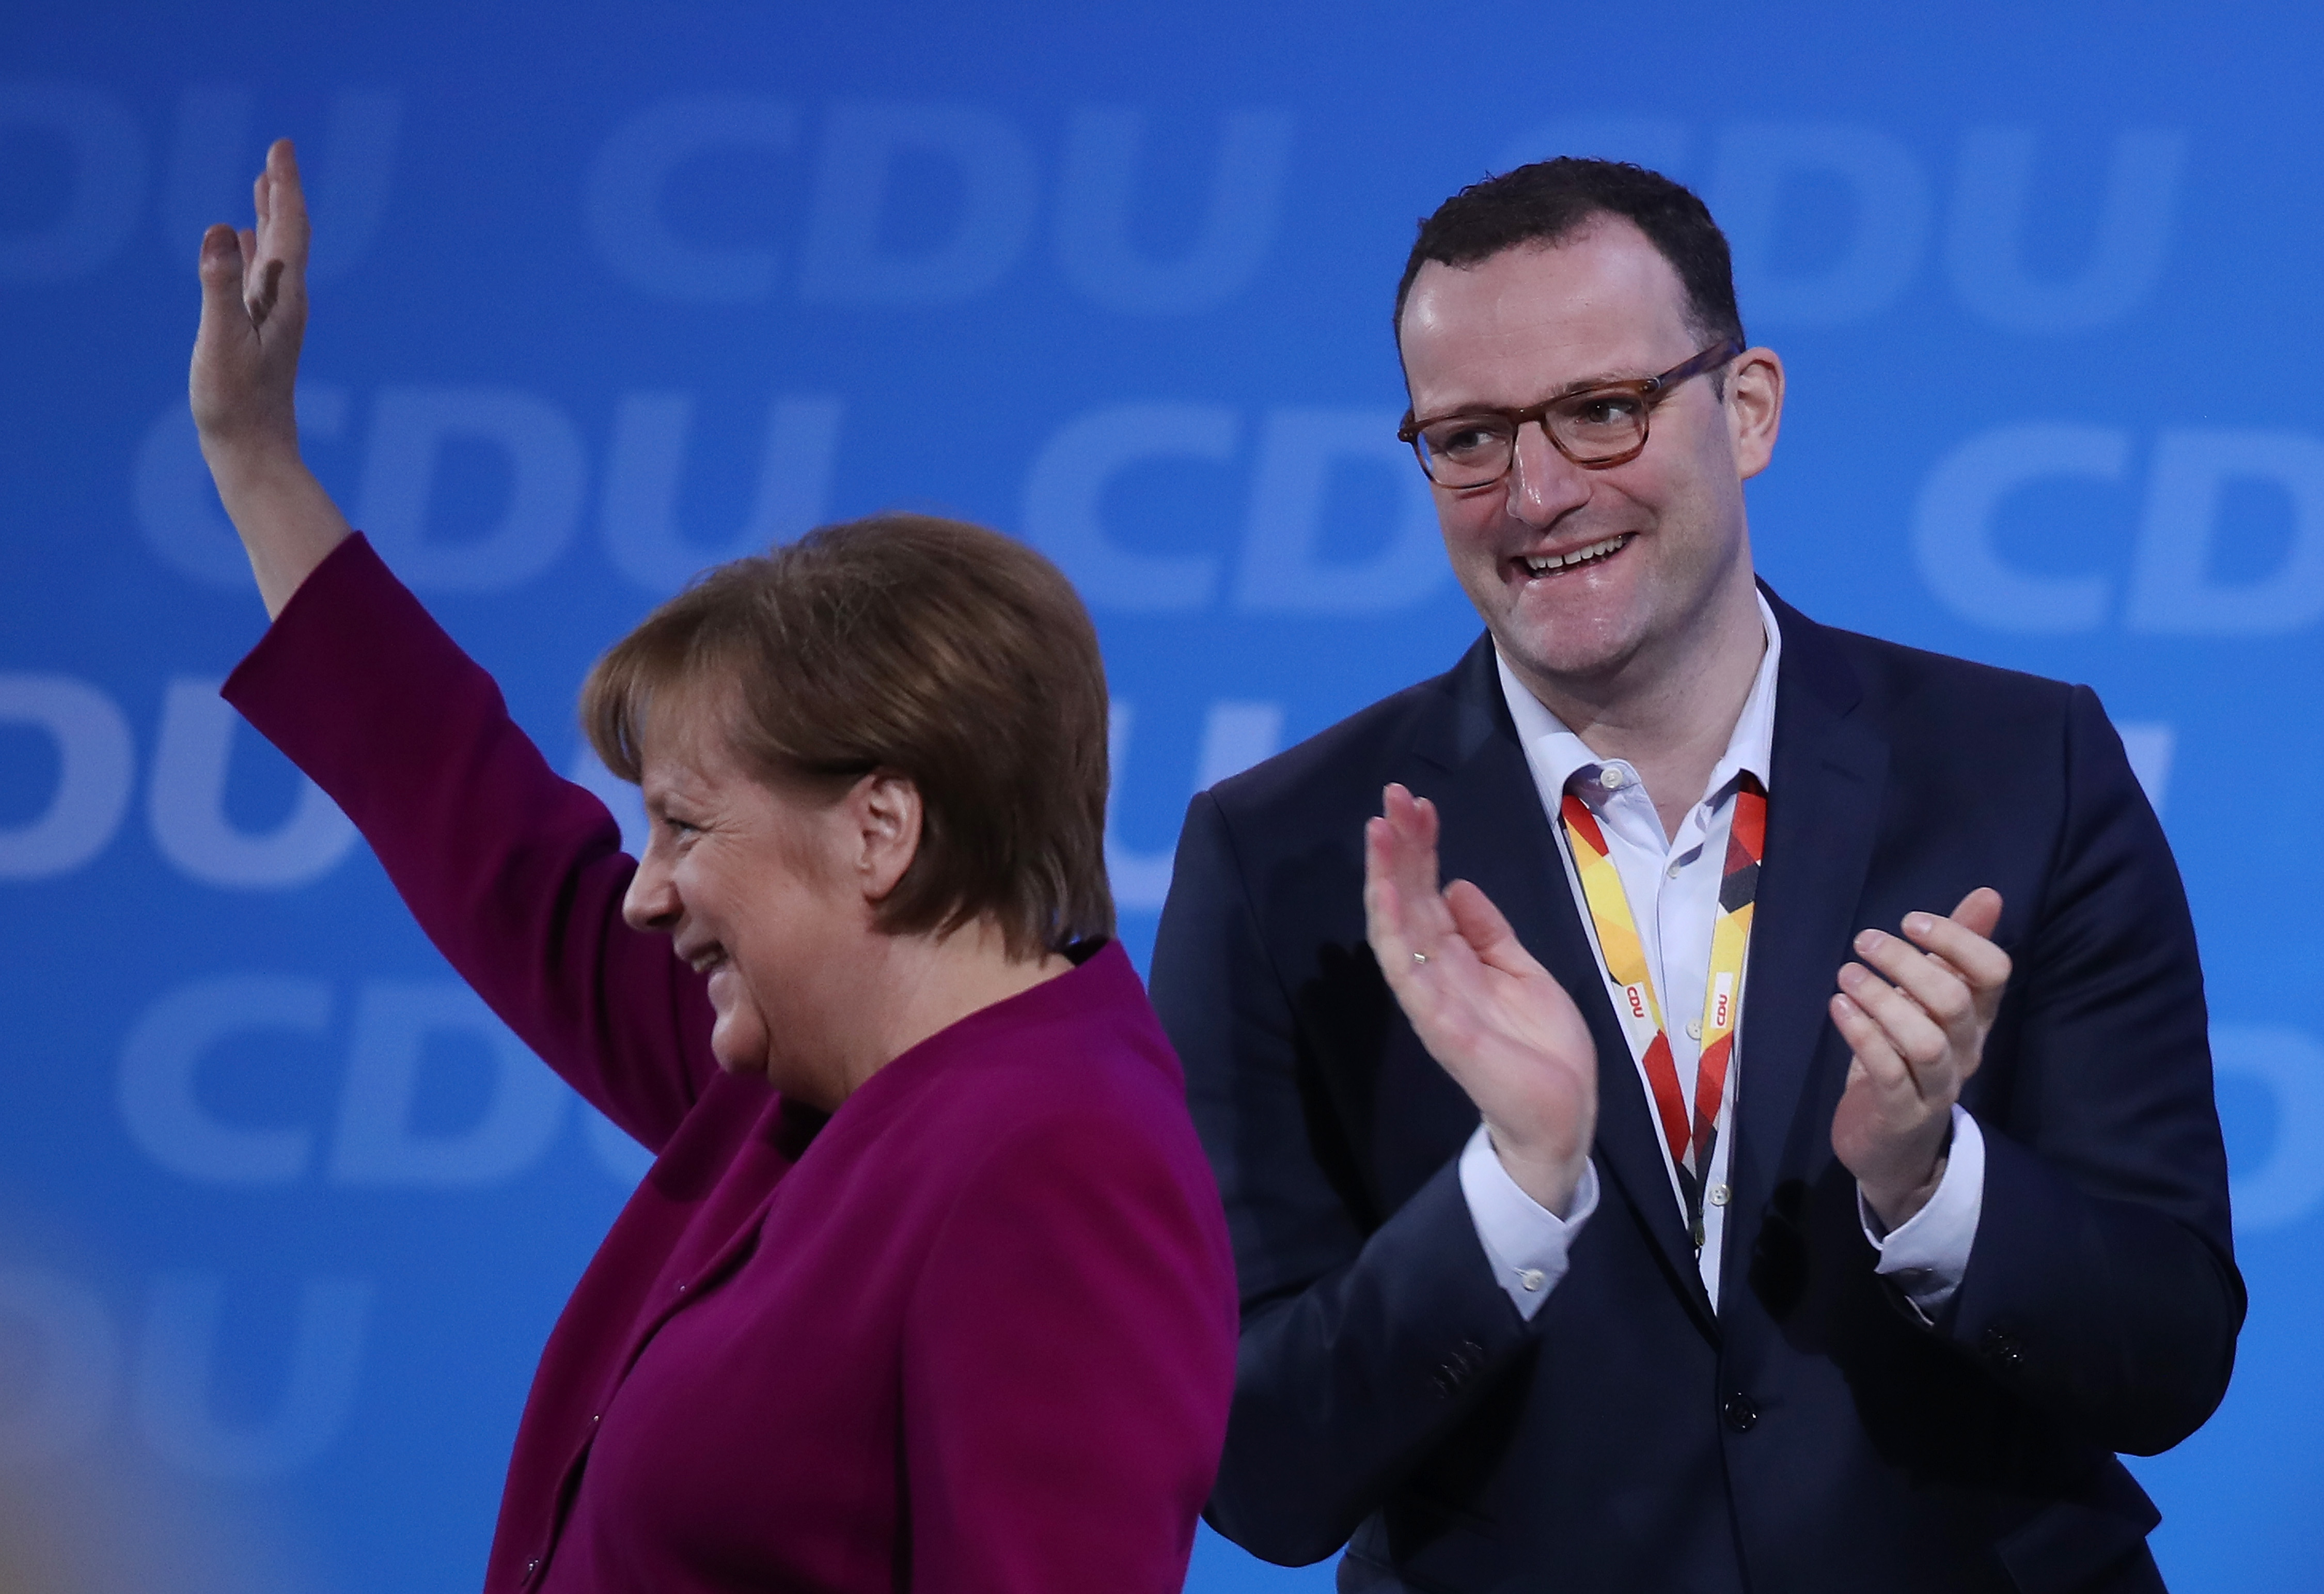 Chancellor of Germany Angela Merkel with health minister Jens Spahn